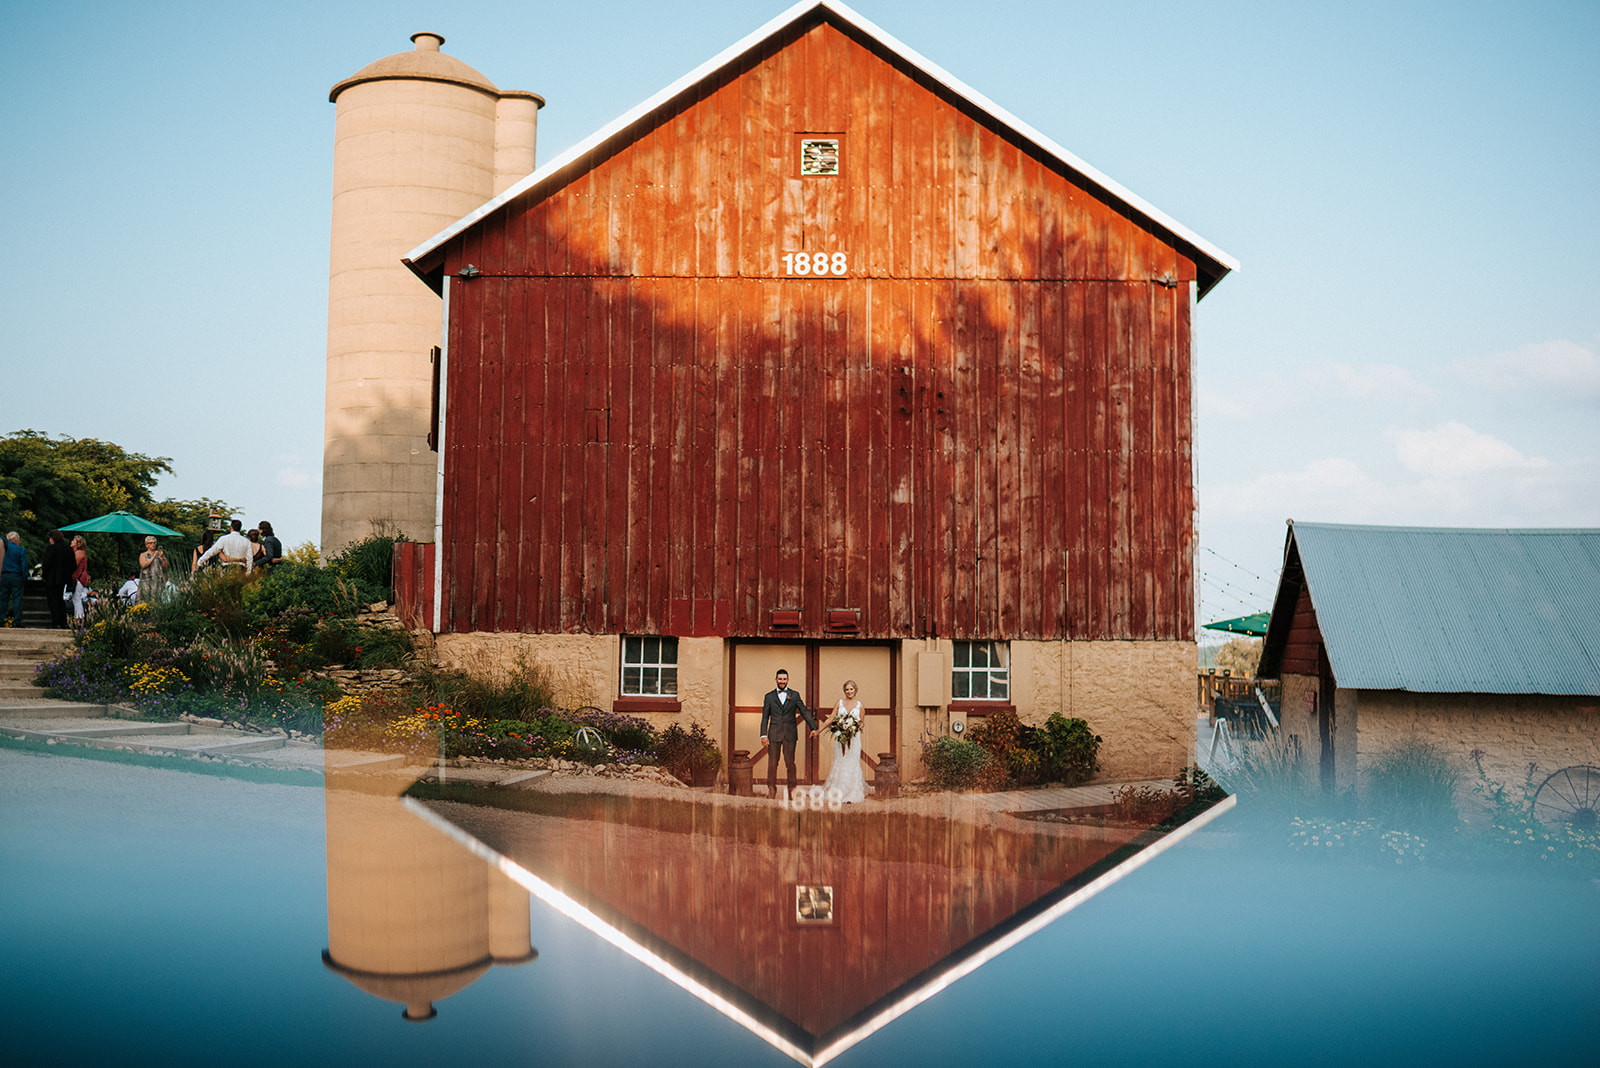 overthevineswisconsinwedding_1006.jpg